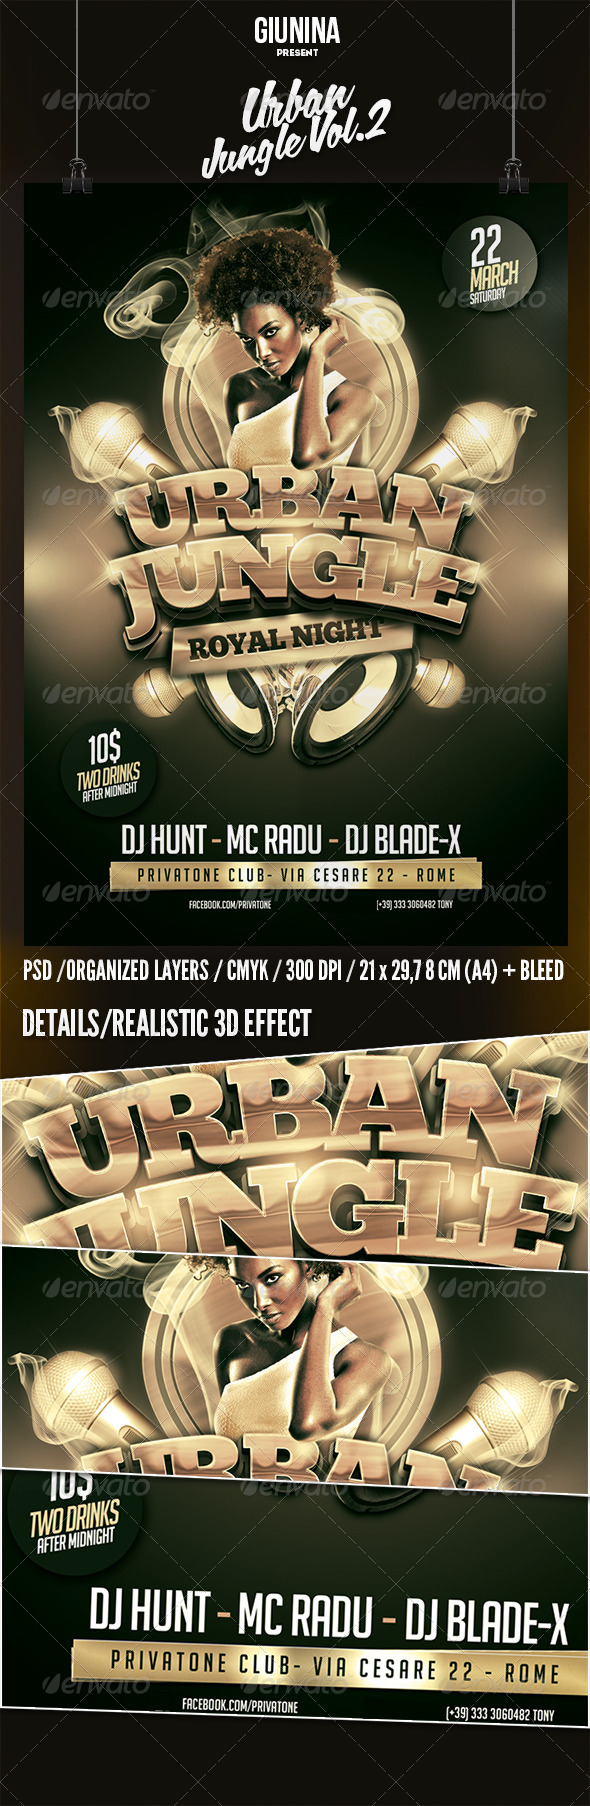 Urban Jungle Vol.2 Flyer/Poster - Events Flyers